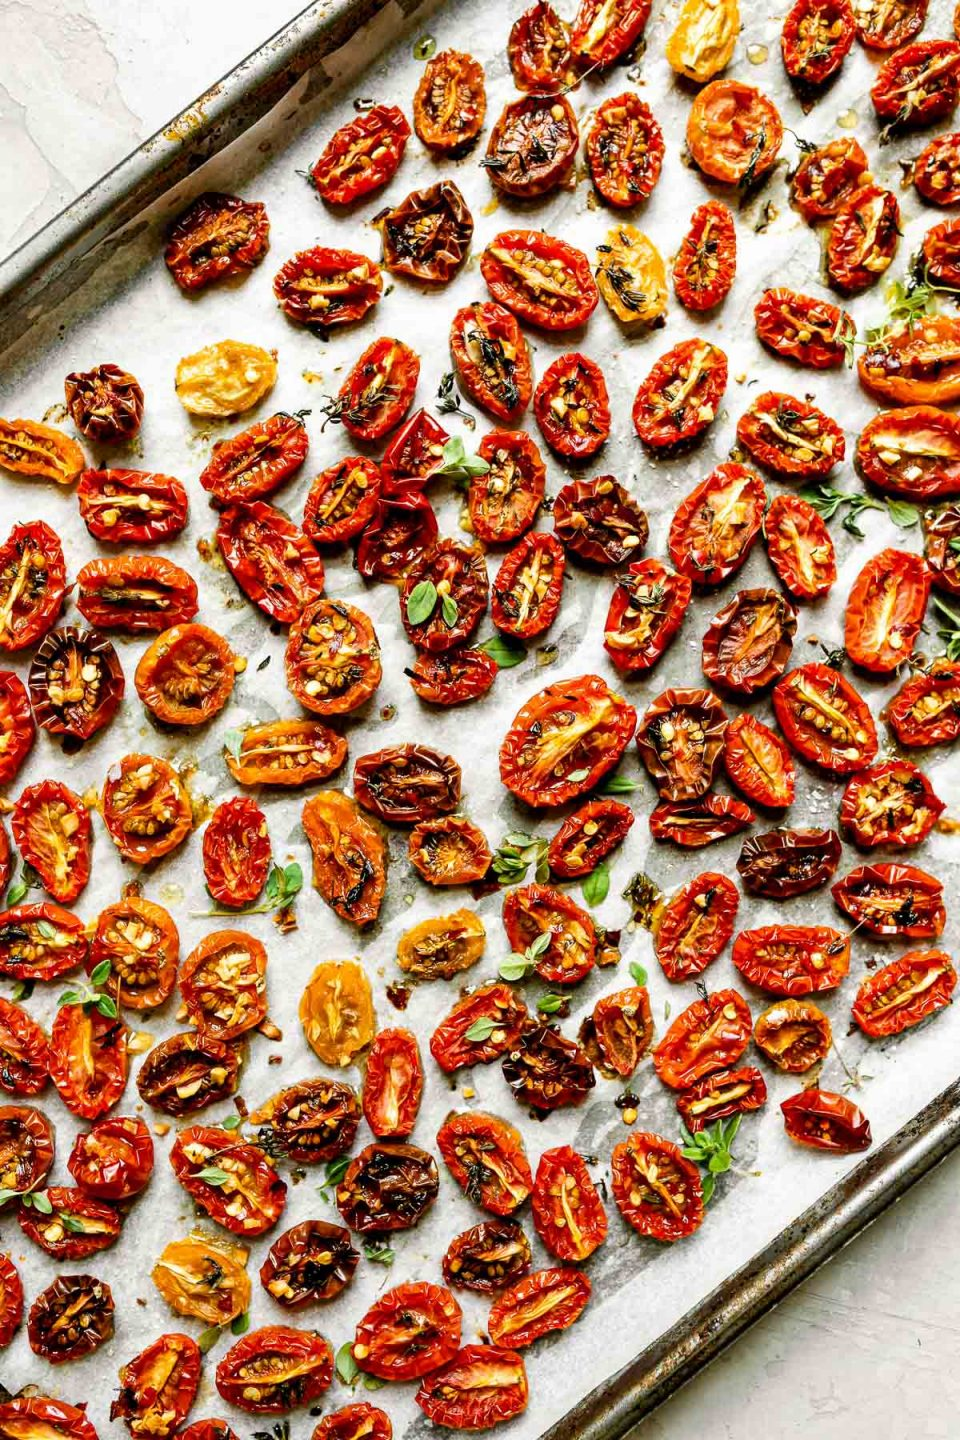 A close up of slow roasted cherry tomatoes arranged on a sheet pan lined with white parchment paper & sprinkled with fresh herbs.